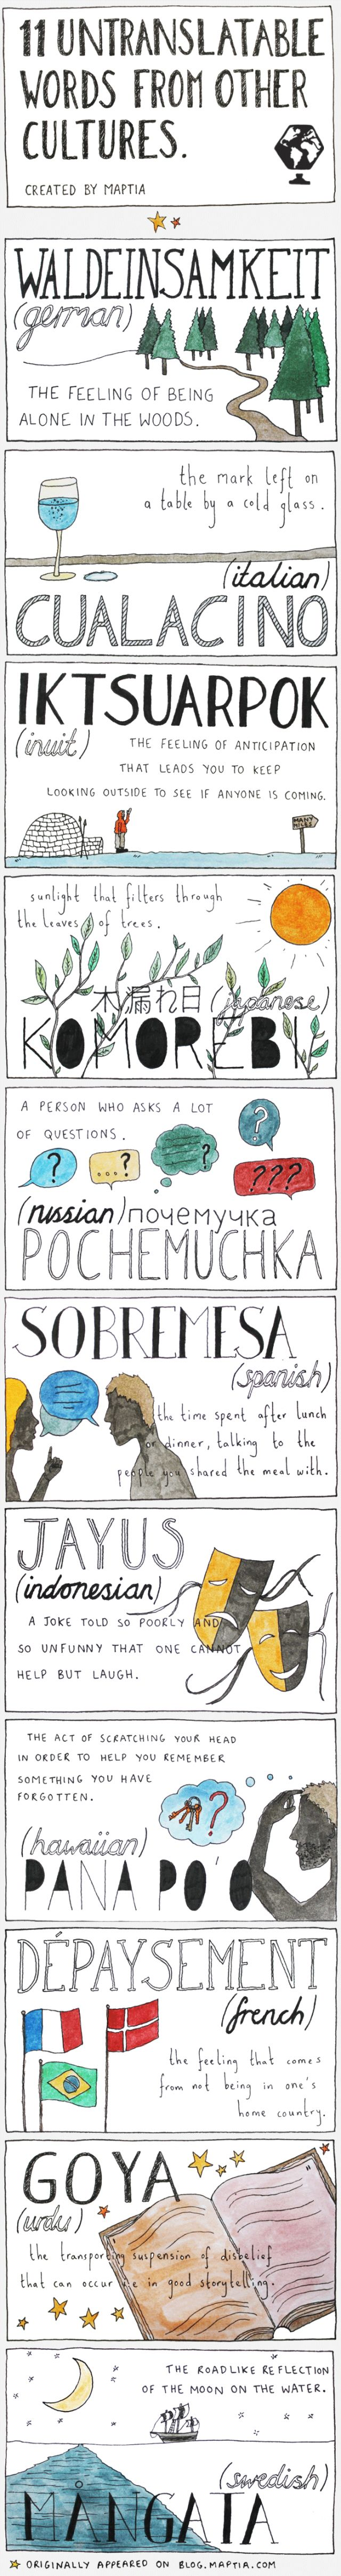 11 Untranslatable Words From Other Cultures. I like the first one!